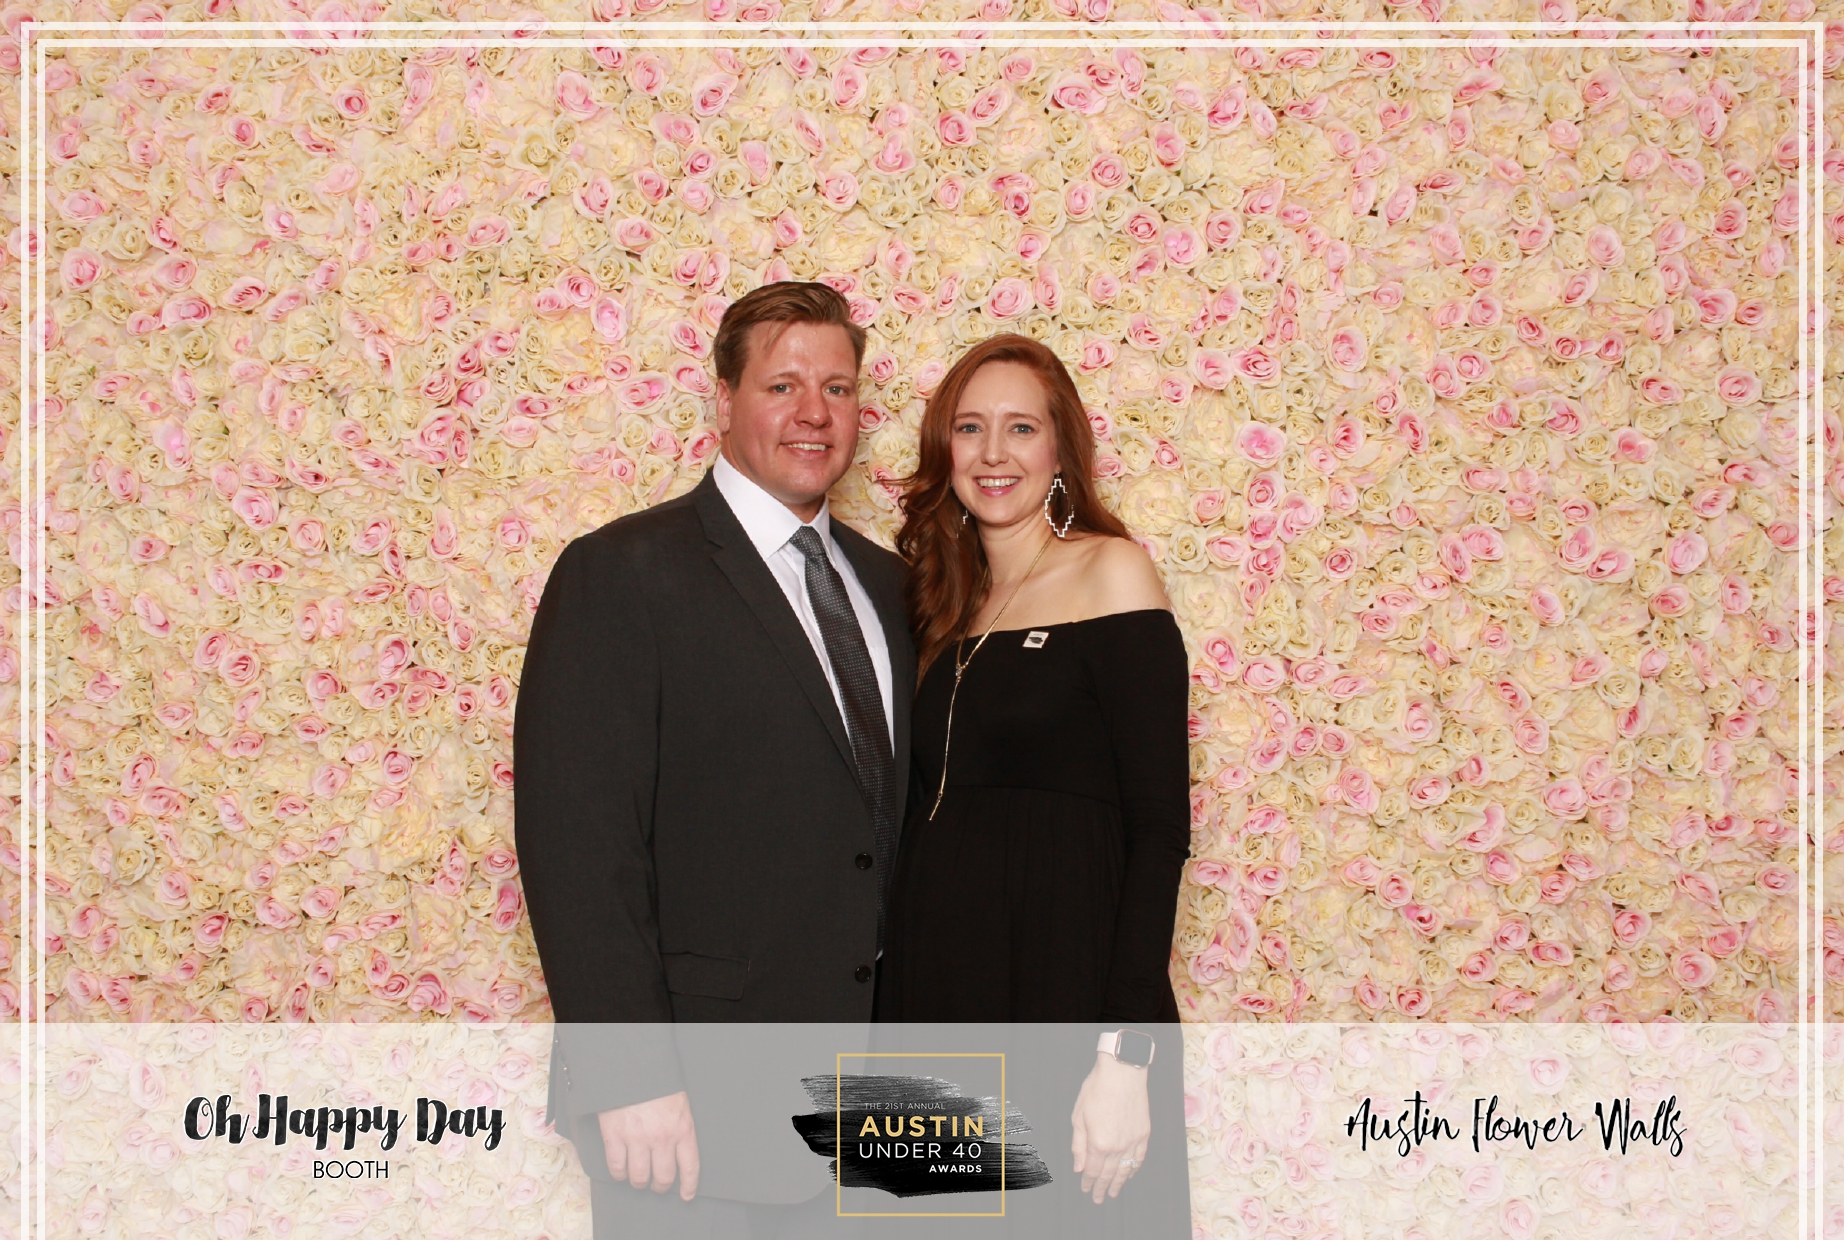 Oh Happy Day Booth - Austin Under 40-56.jpg